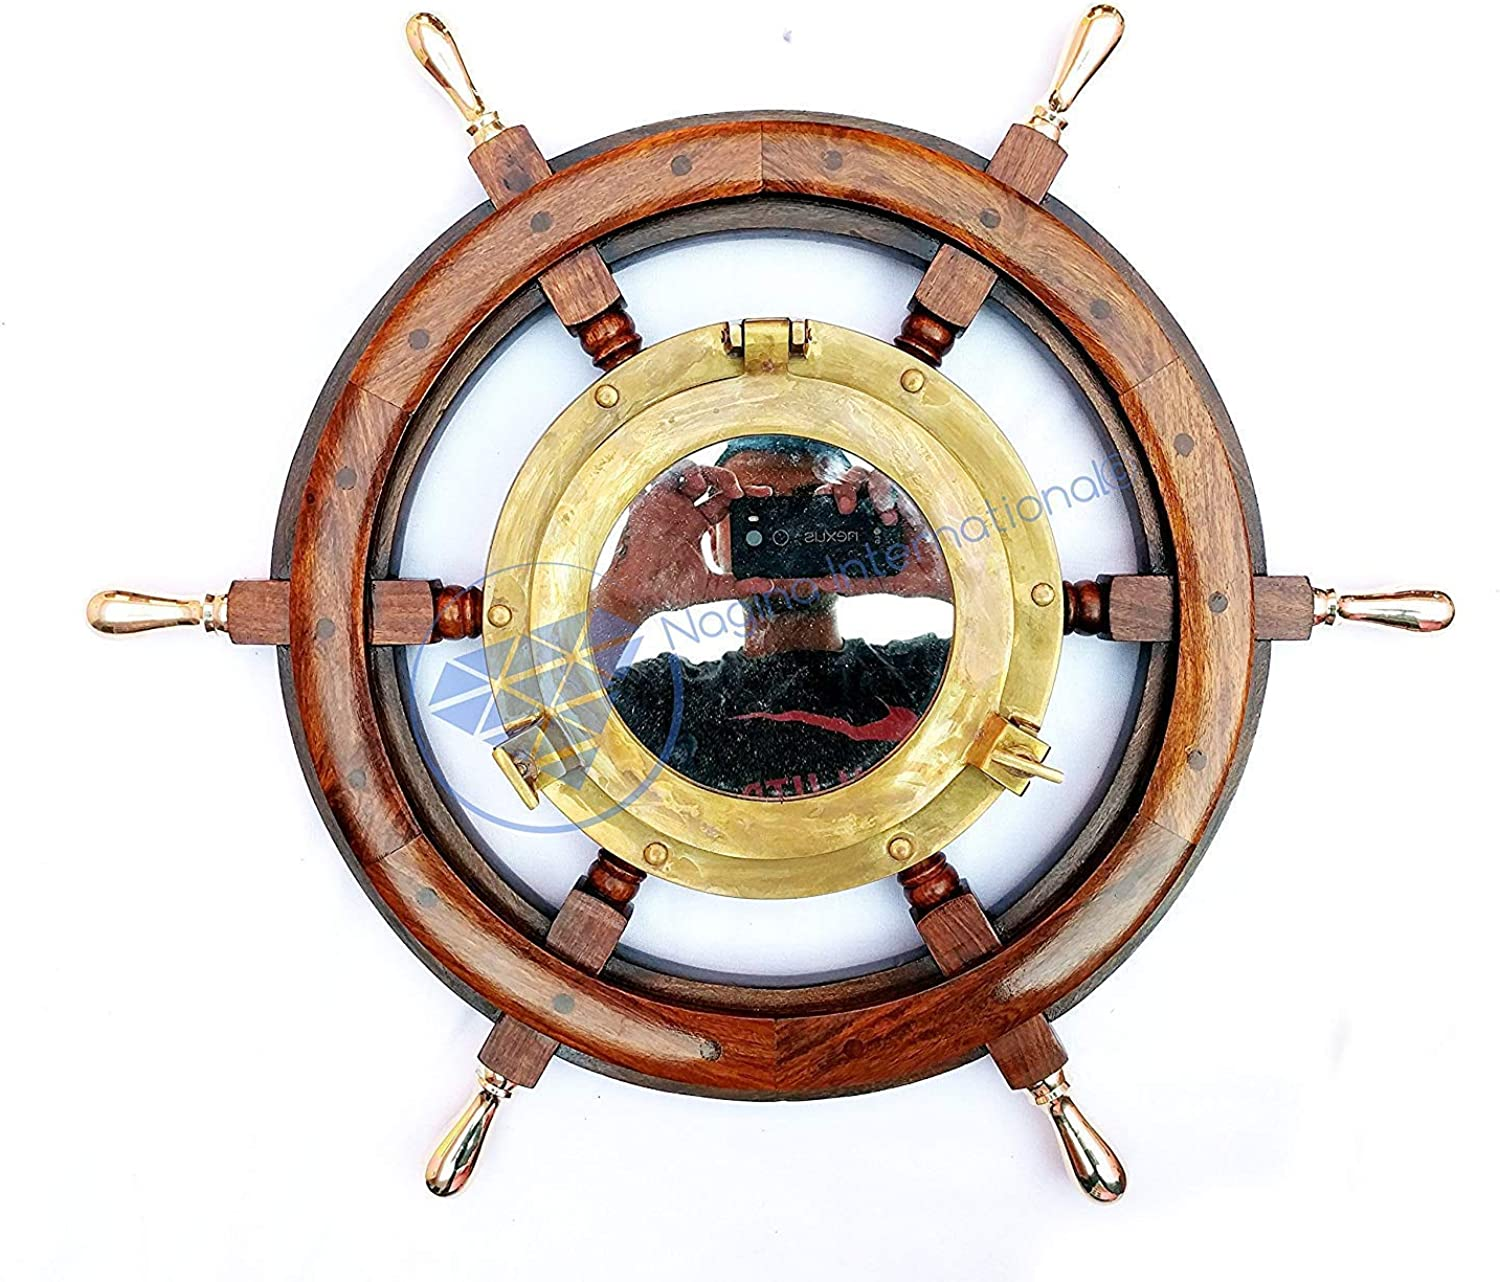 Deluxe pinkwood Crafted Nautical Wooden Ship Wheel With Antique Brass Porthole Window   Authentic Pirate Decor Transparent Glass   Nagina International (18 Inches)